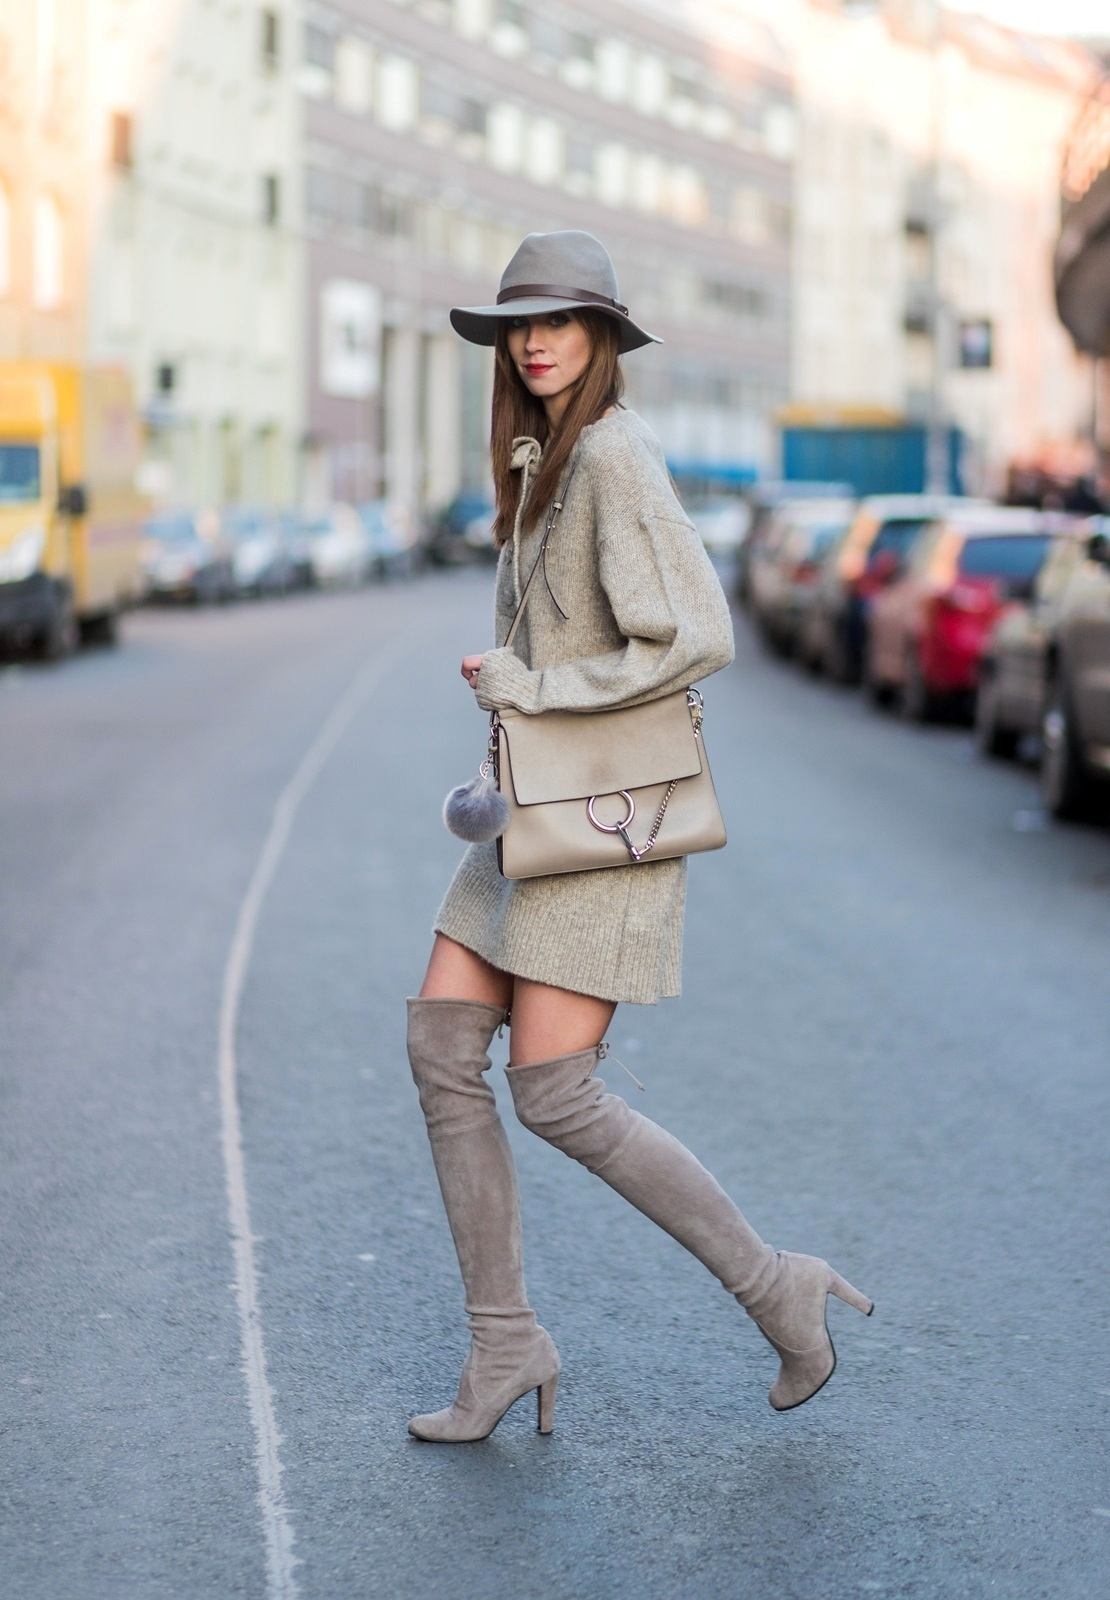 berlin_street_style_27.01.17_getty-34 (Copy)